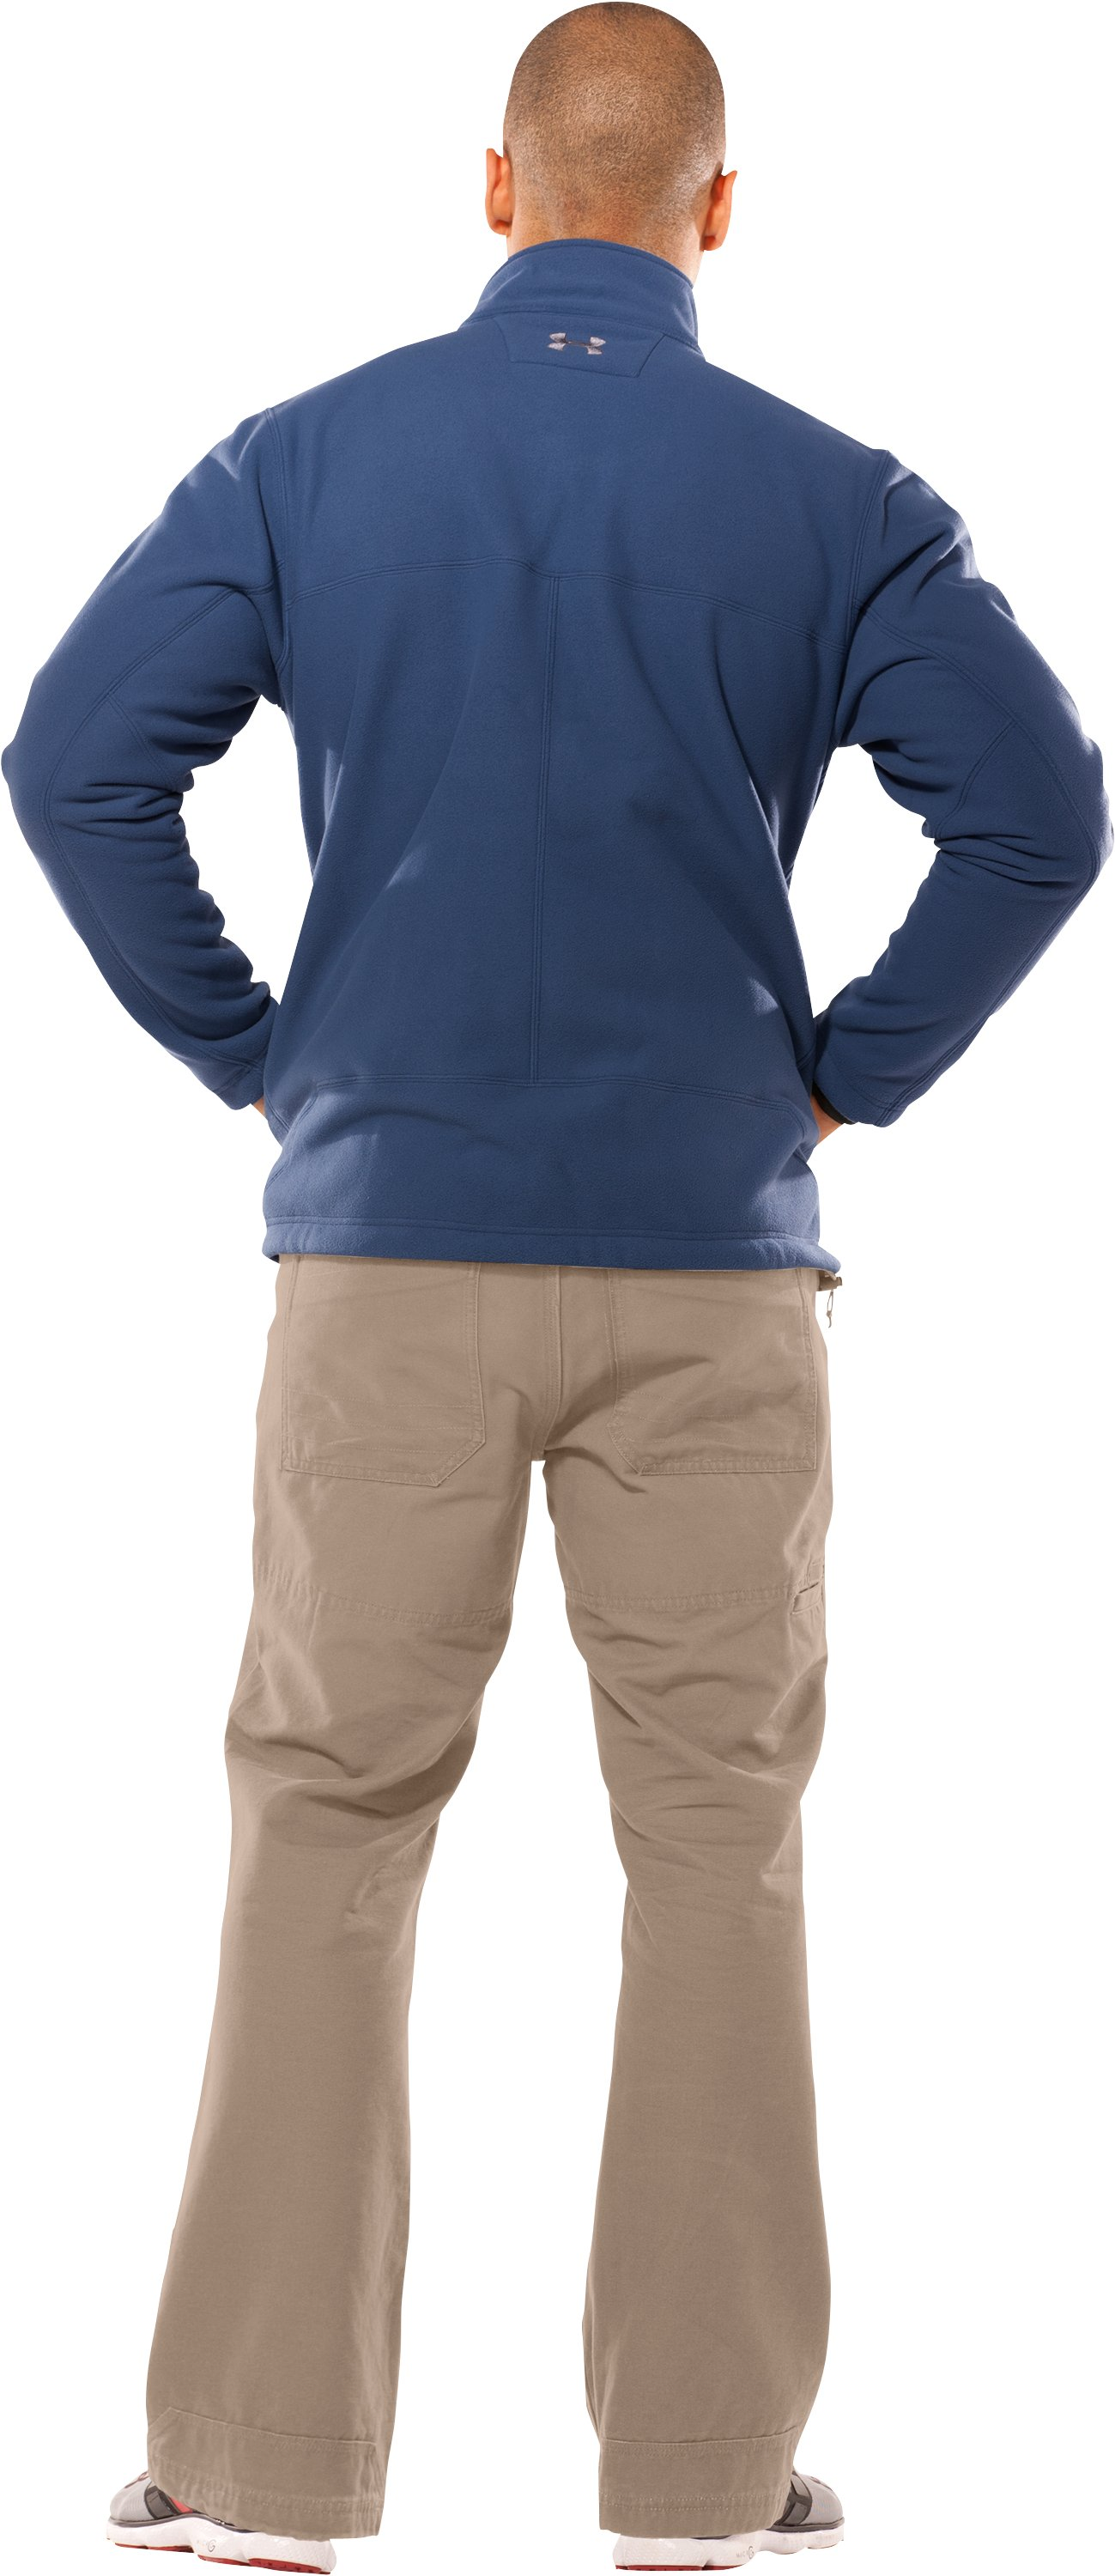 Men's Derecho II Windproof Fleece Jacket, Admiral, Back